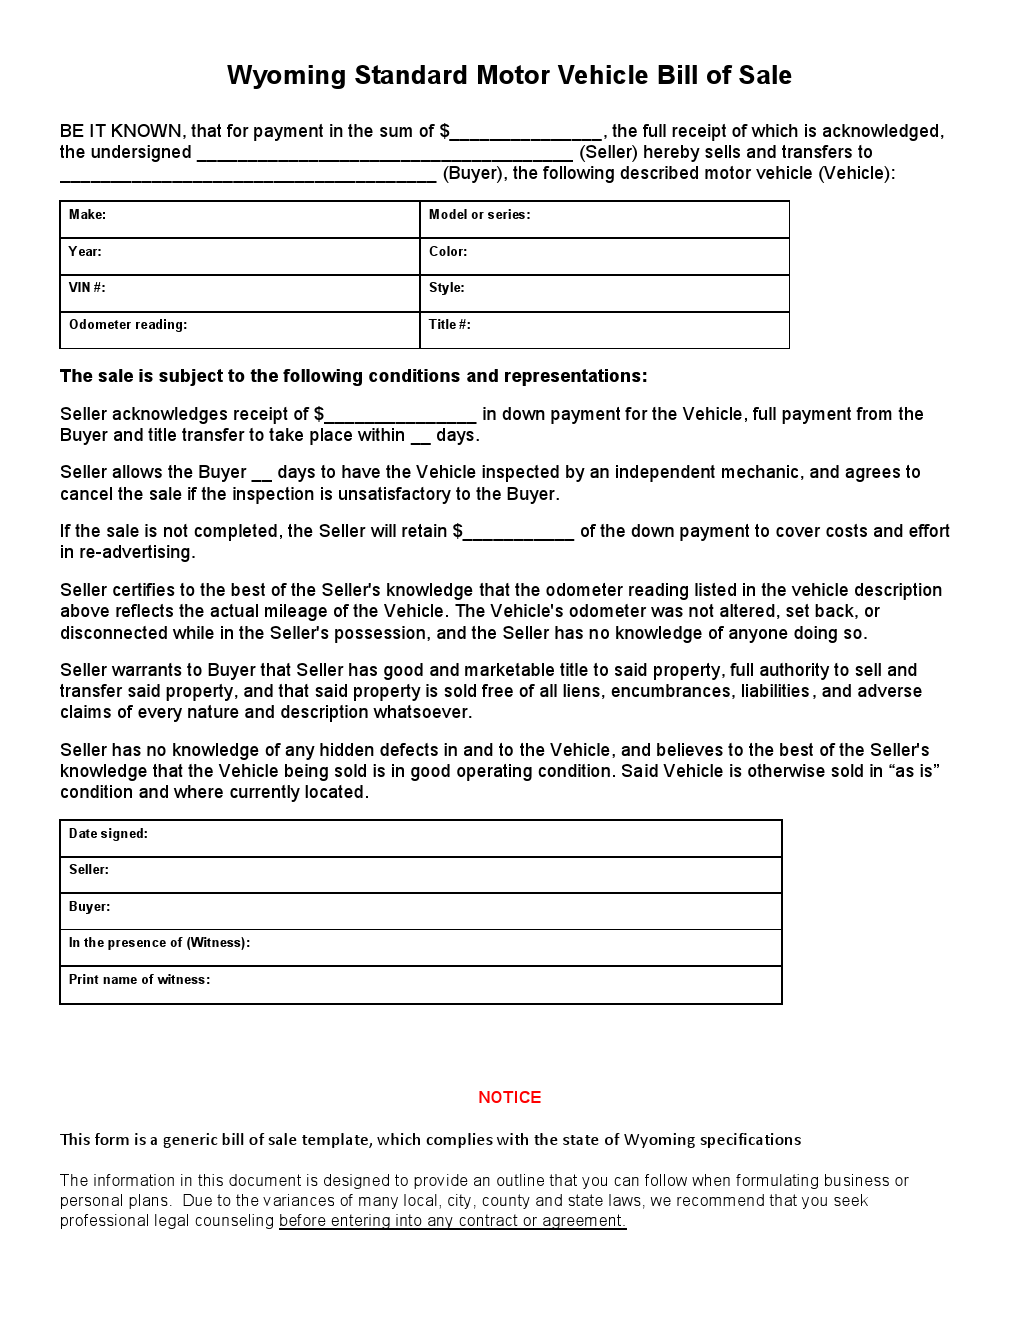 free wyoming standard motor vehicle bill of sale form download pdf